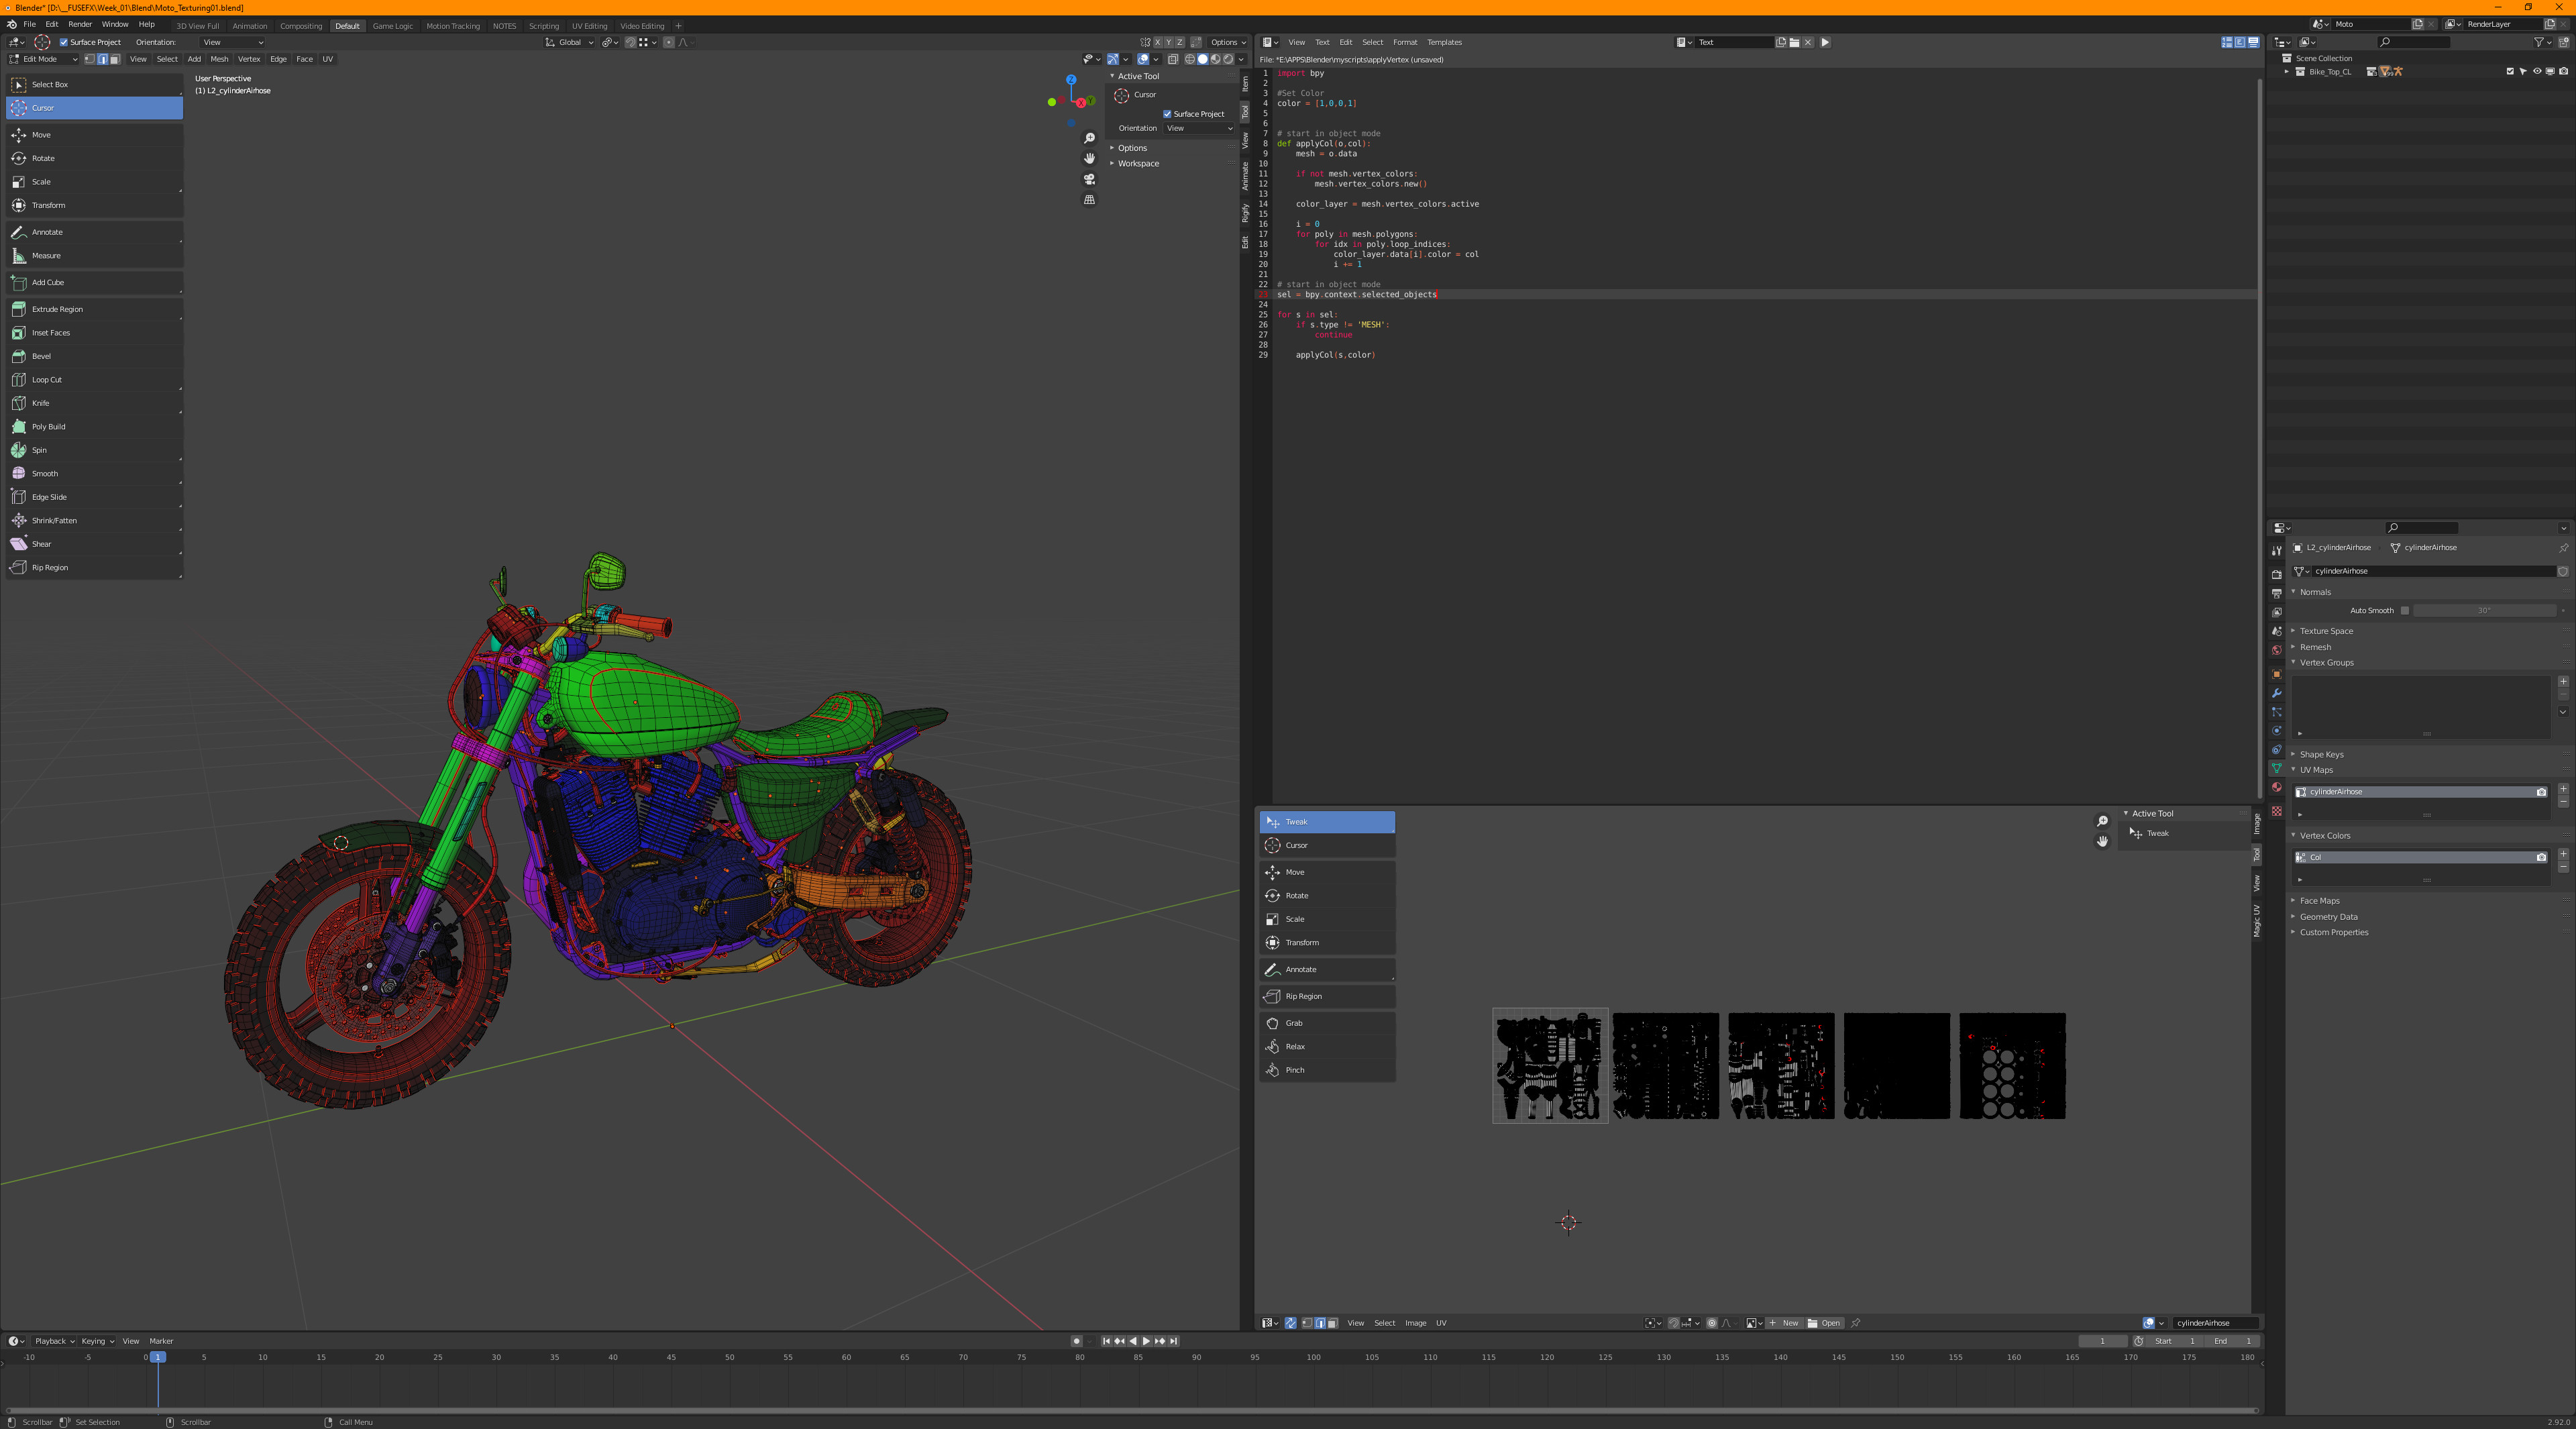 Re-UVing the bike in Blender. I made a script to apply vertex colors to bring into Substance Painter.